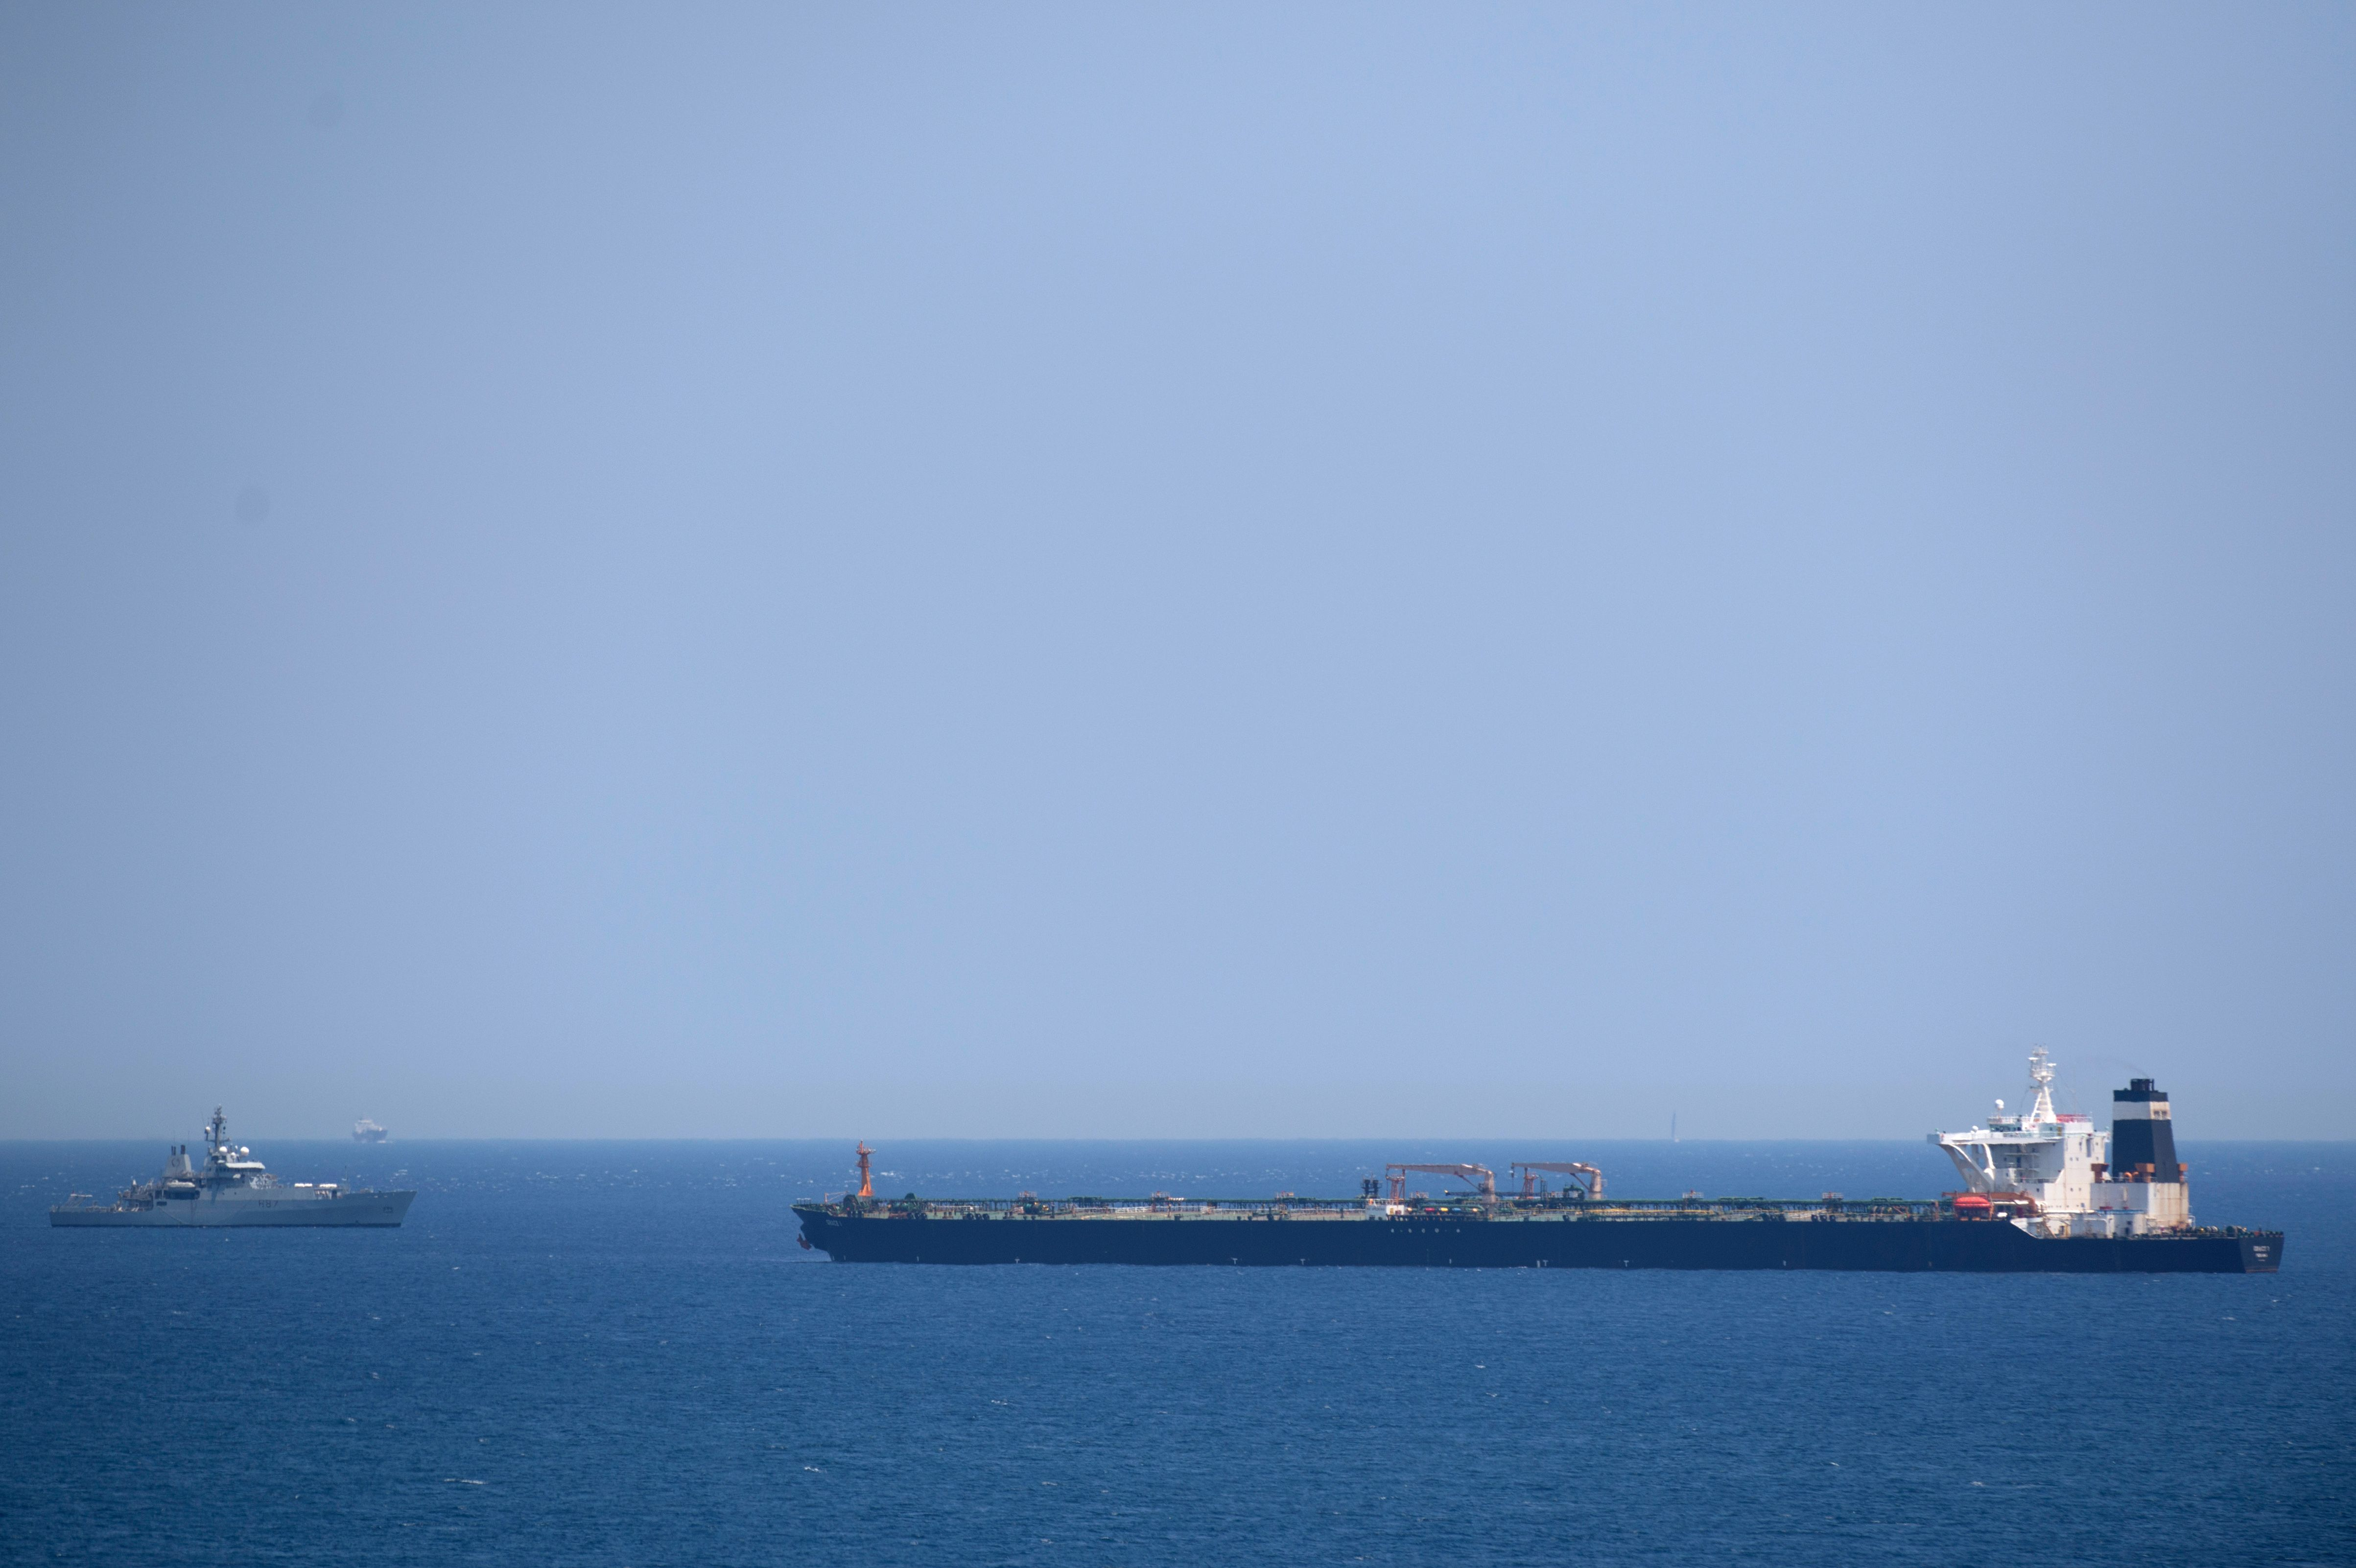 Iran urges UK to release seized oil tanker as tensions escalate